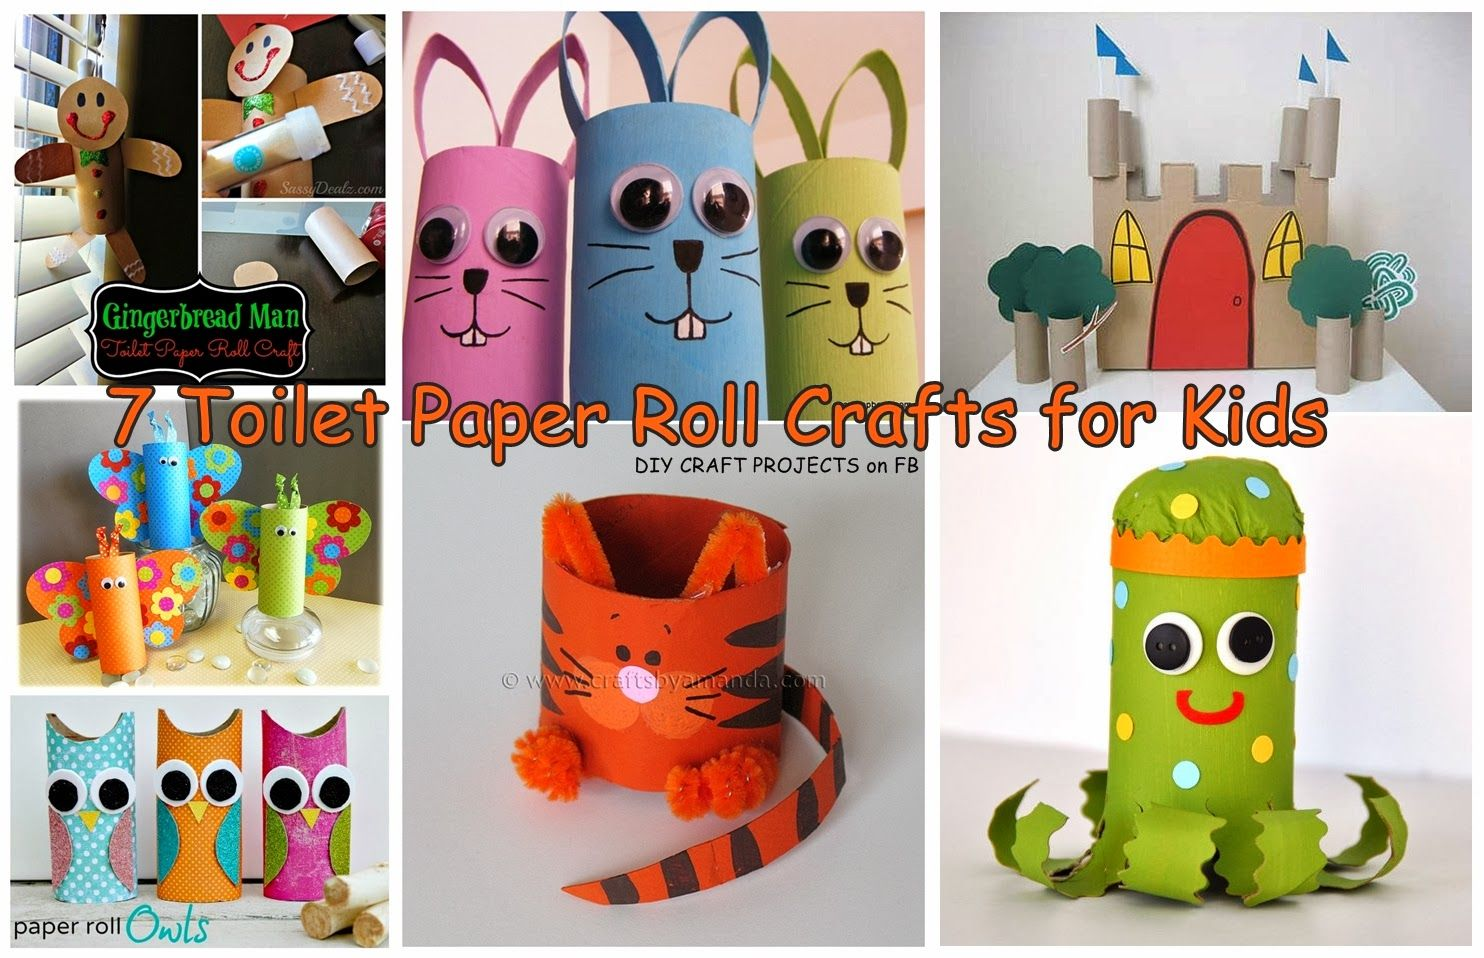 Toilet Roll Craft Ideas For Kids Part - 15: 7 Toilet Paper Roll Crafts For Kids